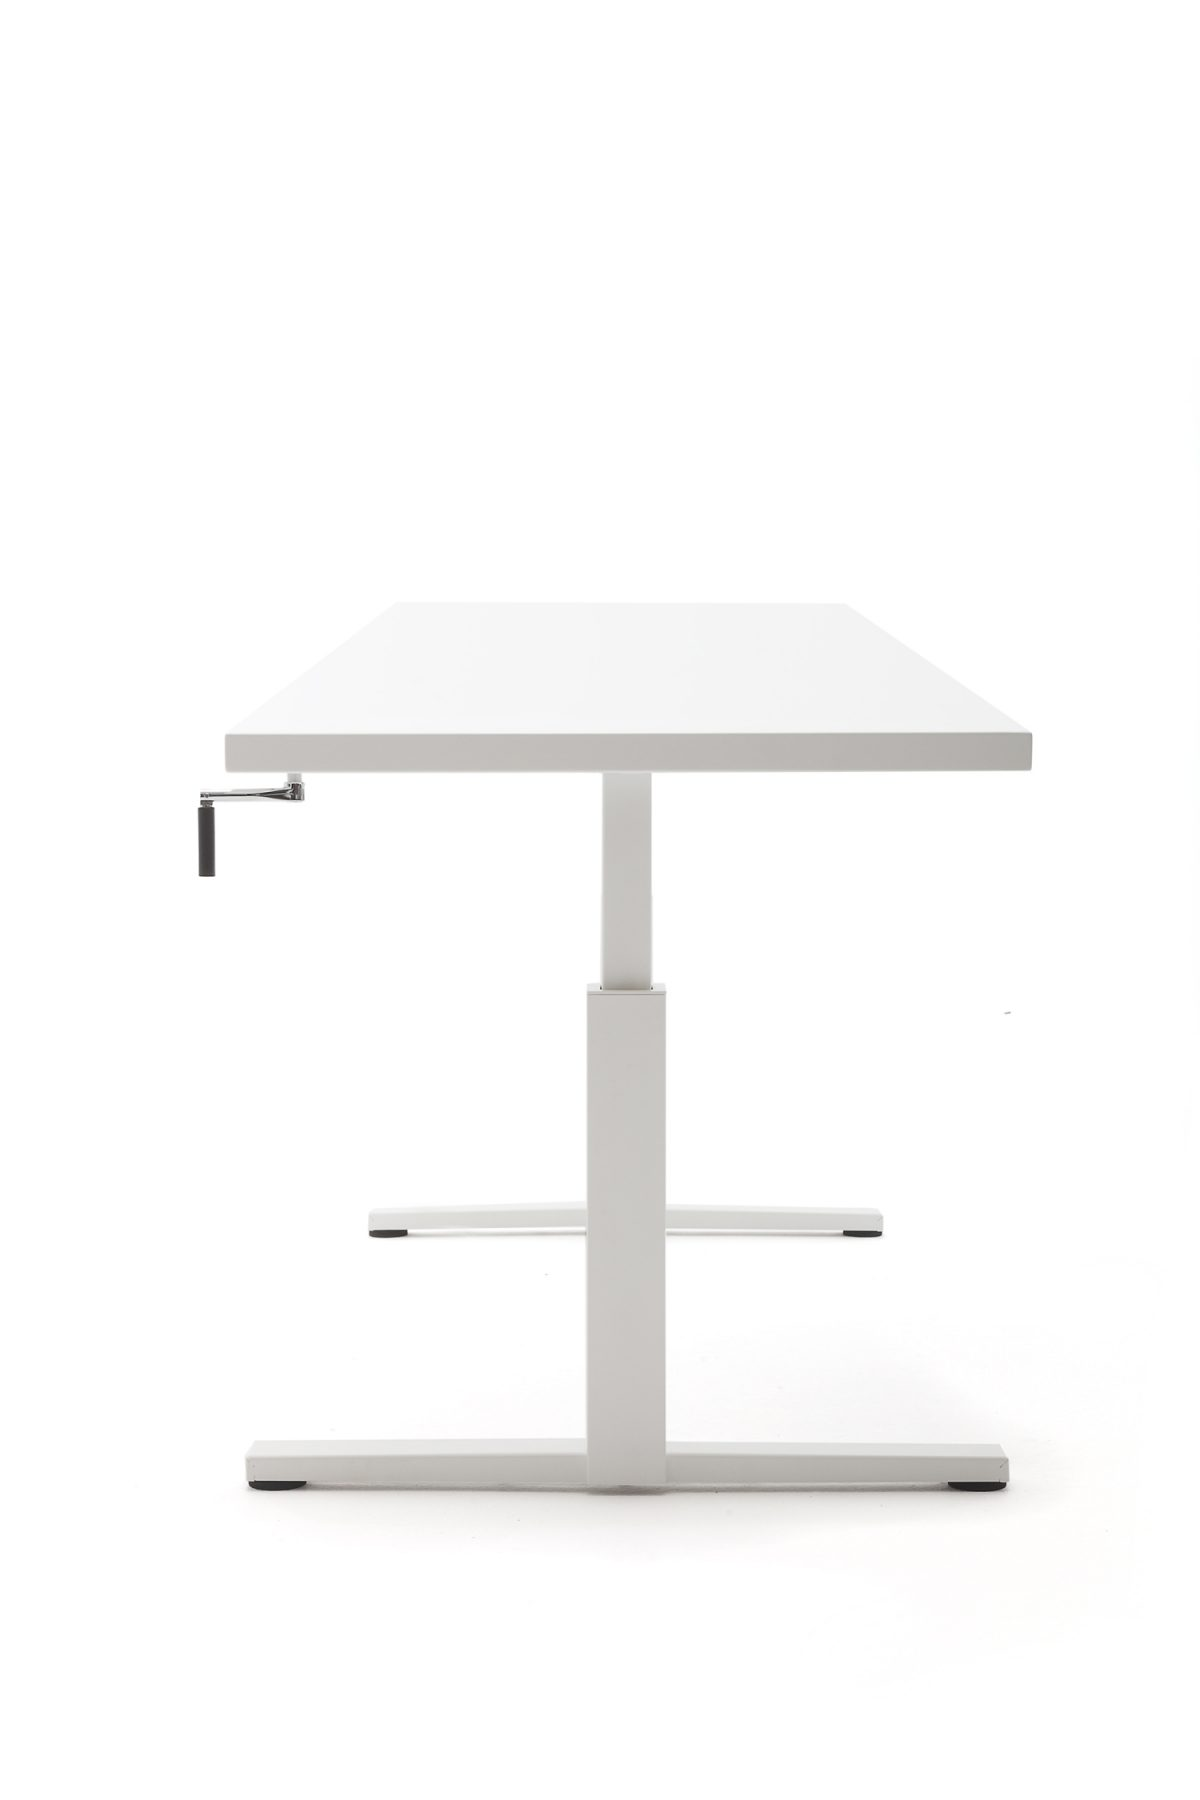 Gispen SteelTop desk